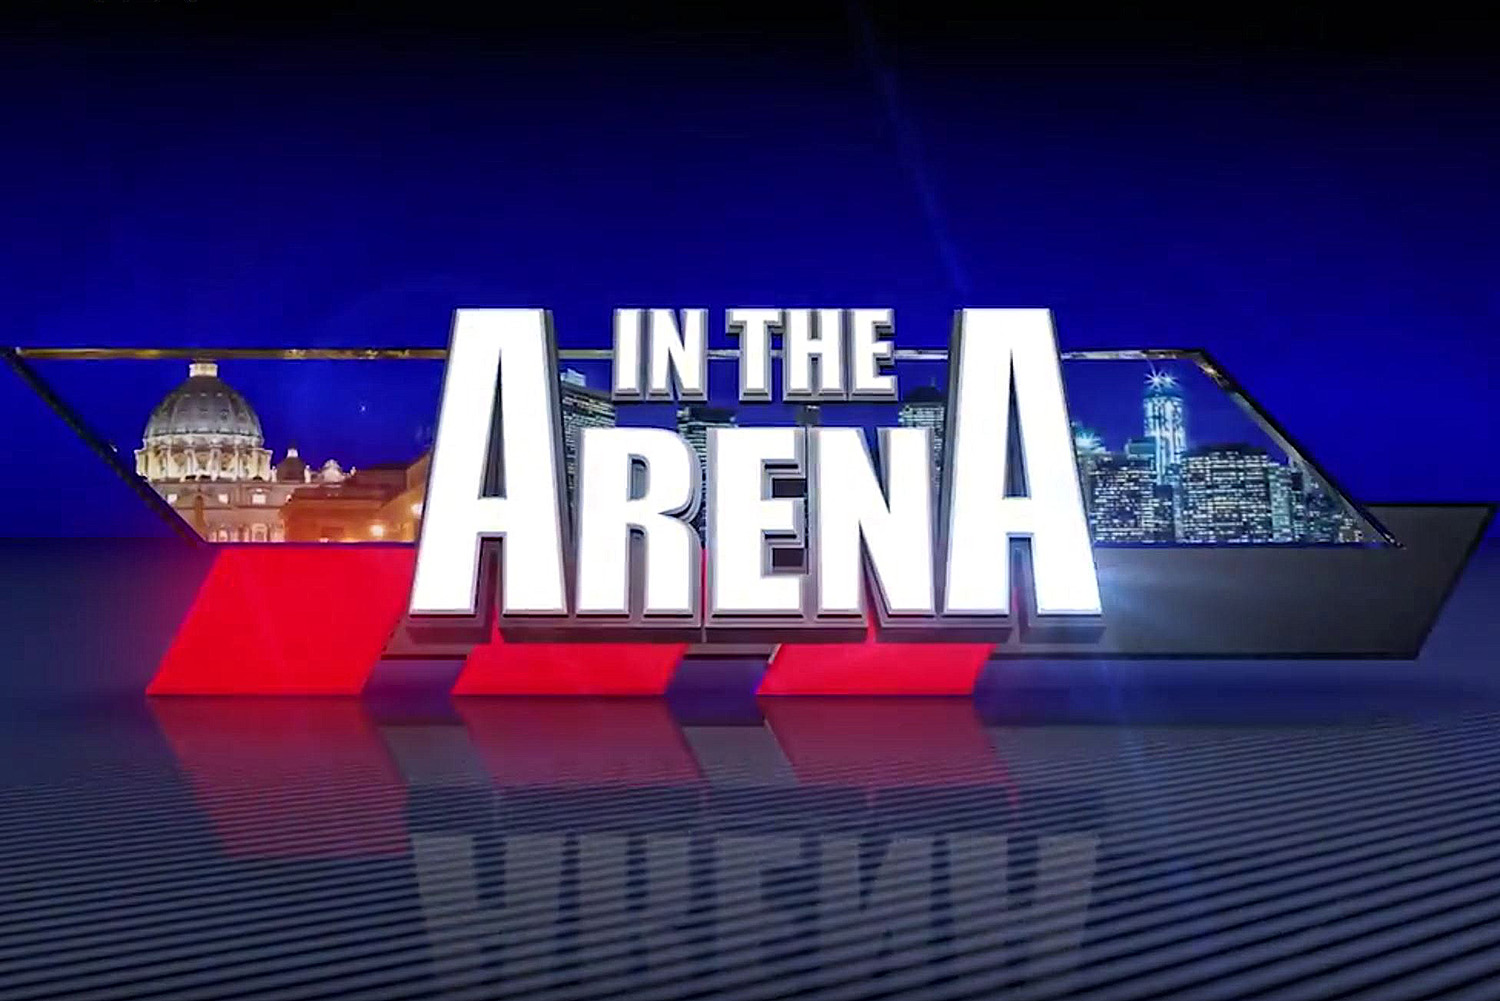 In The Arena: The Aging Brain